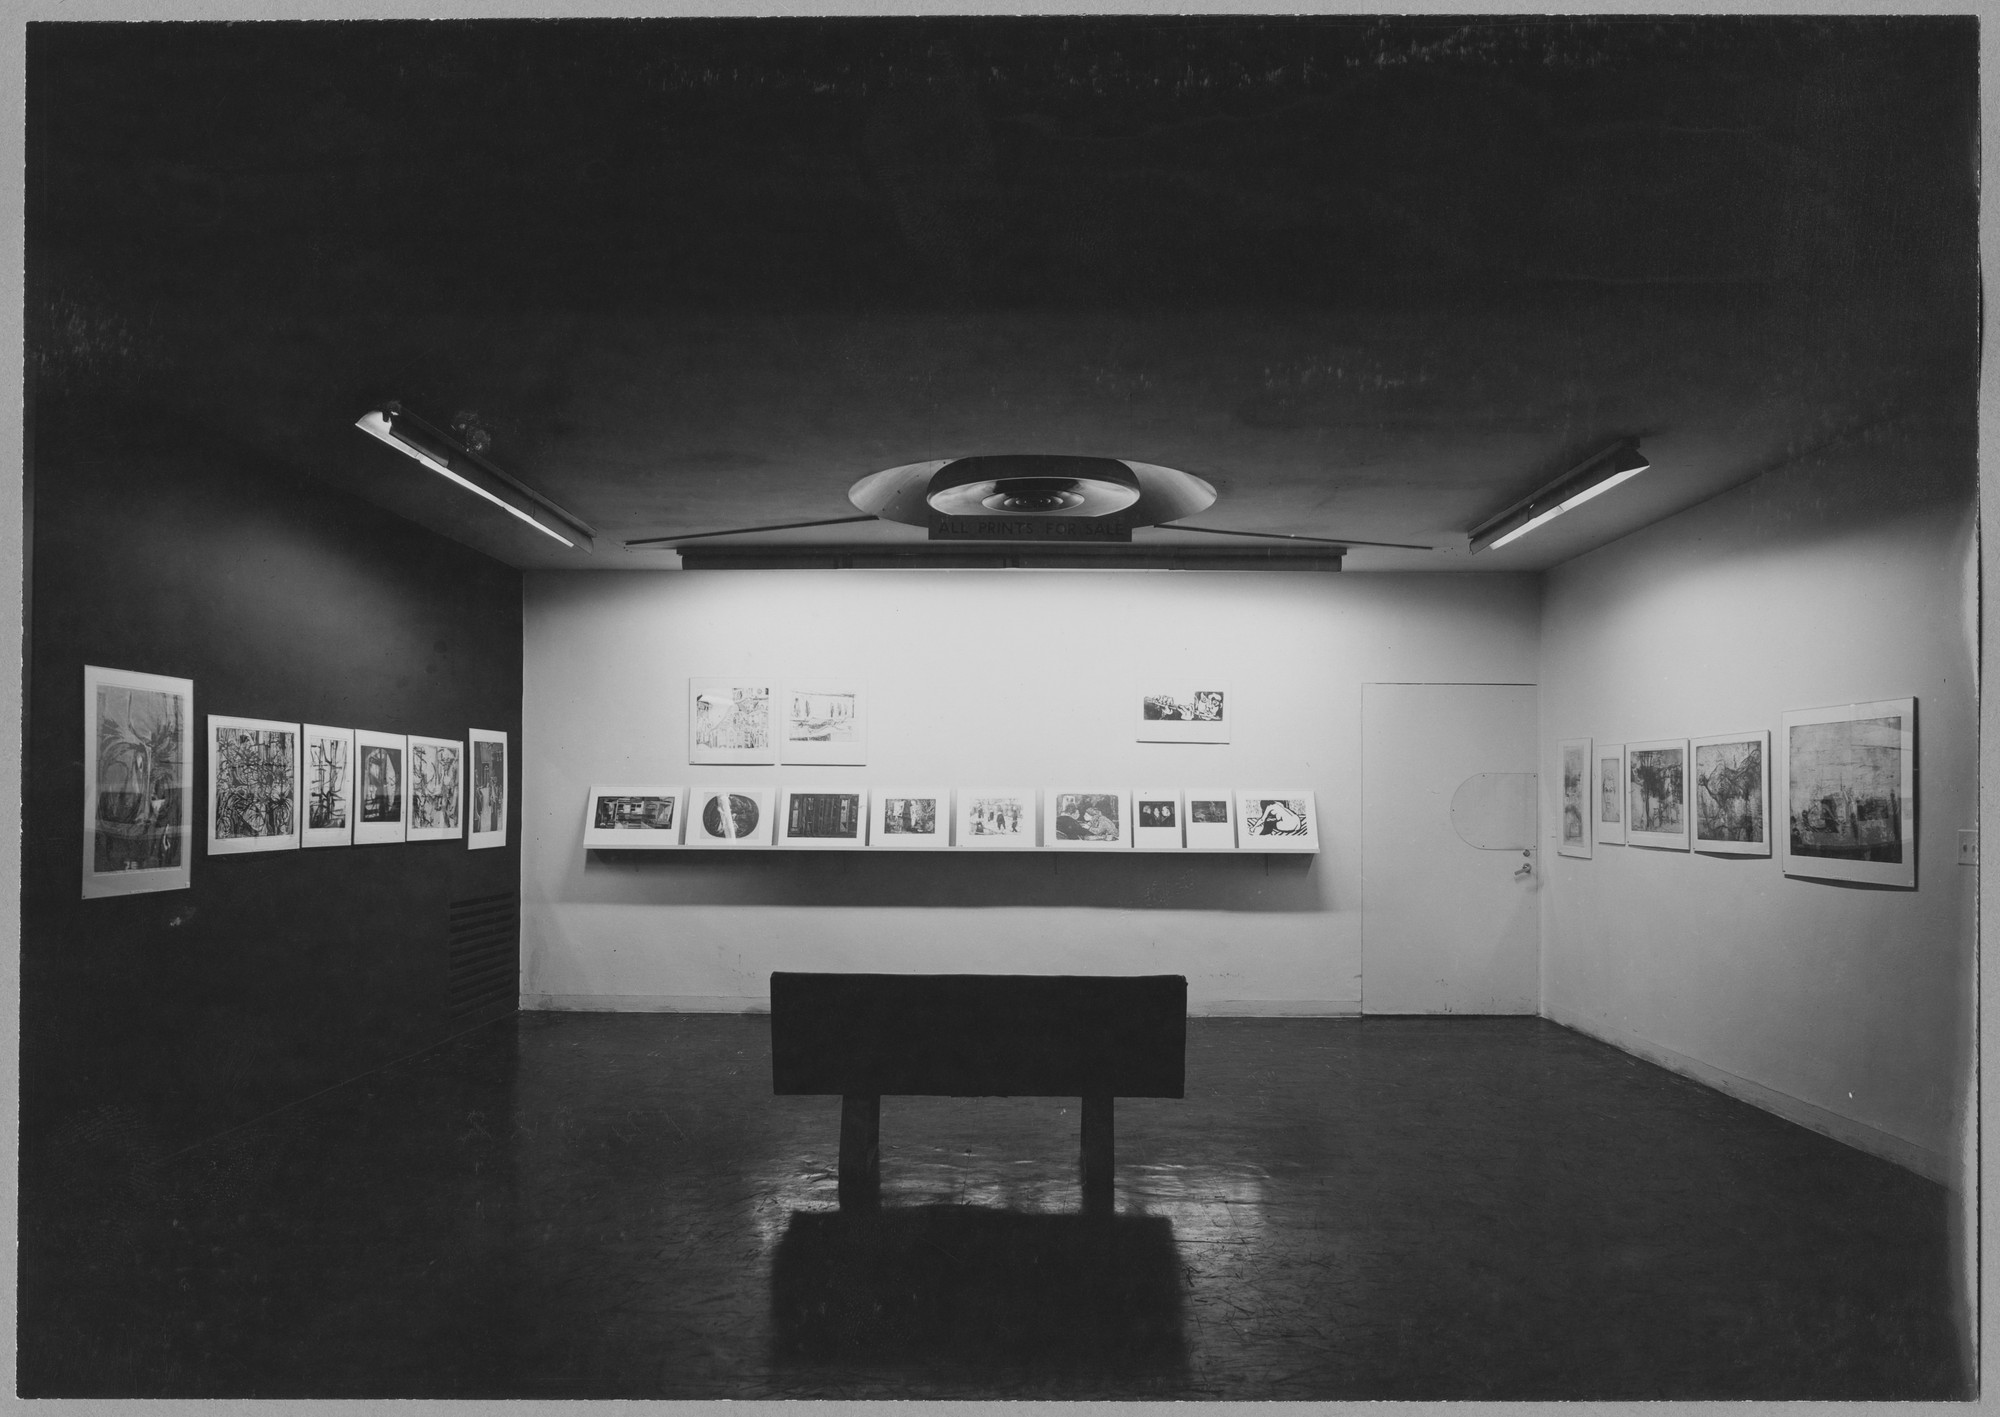 "Installation view of the exhibition, ""Young American Printmakers."" November 25, 1953–January 31, 1954. Photographic Archive. The Museum of Modern Art Archives, New York. IN547.1. Photograph by Soichi Sunami."